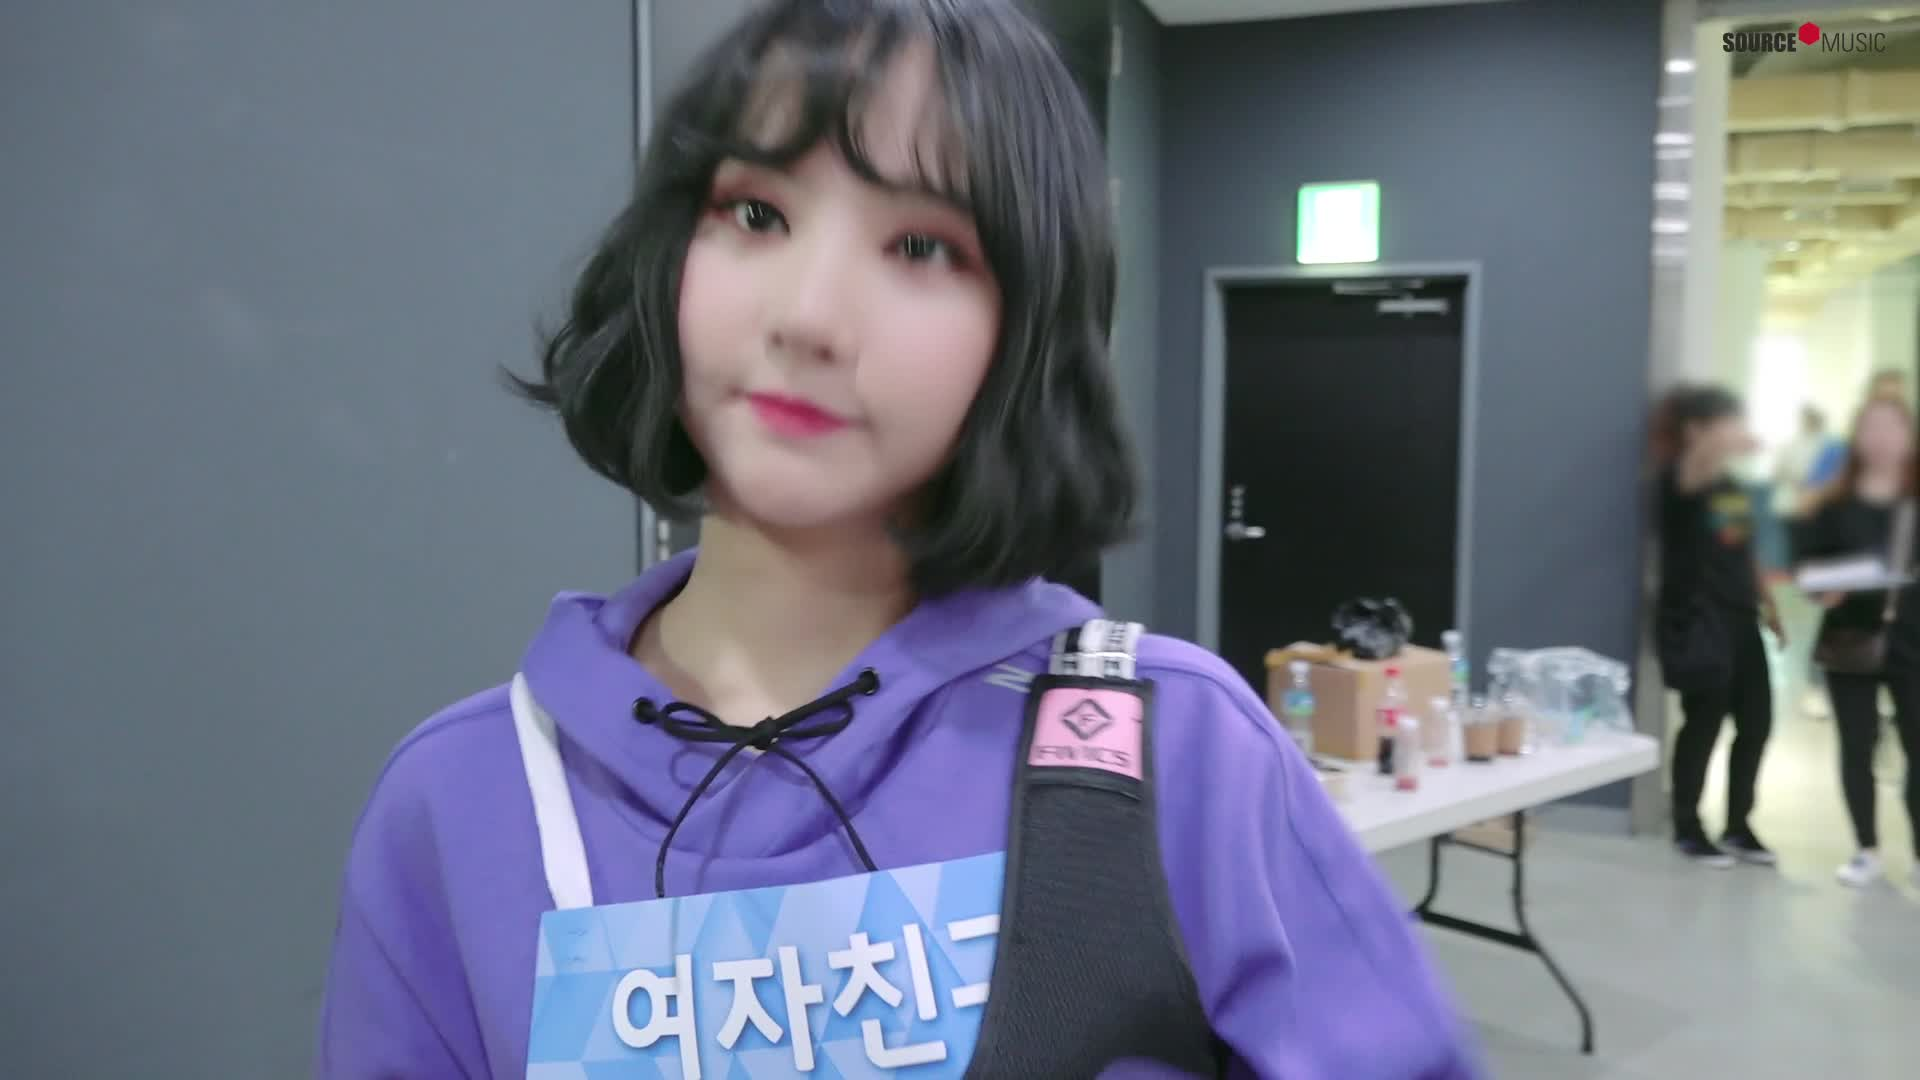 [Special Clips] 여자친구 GFRIEND - 2018 추석 특집 아이돌 육상 대회 behind